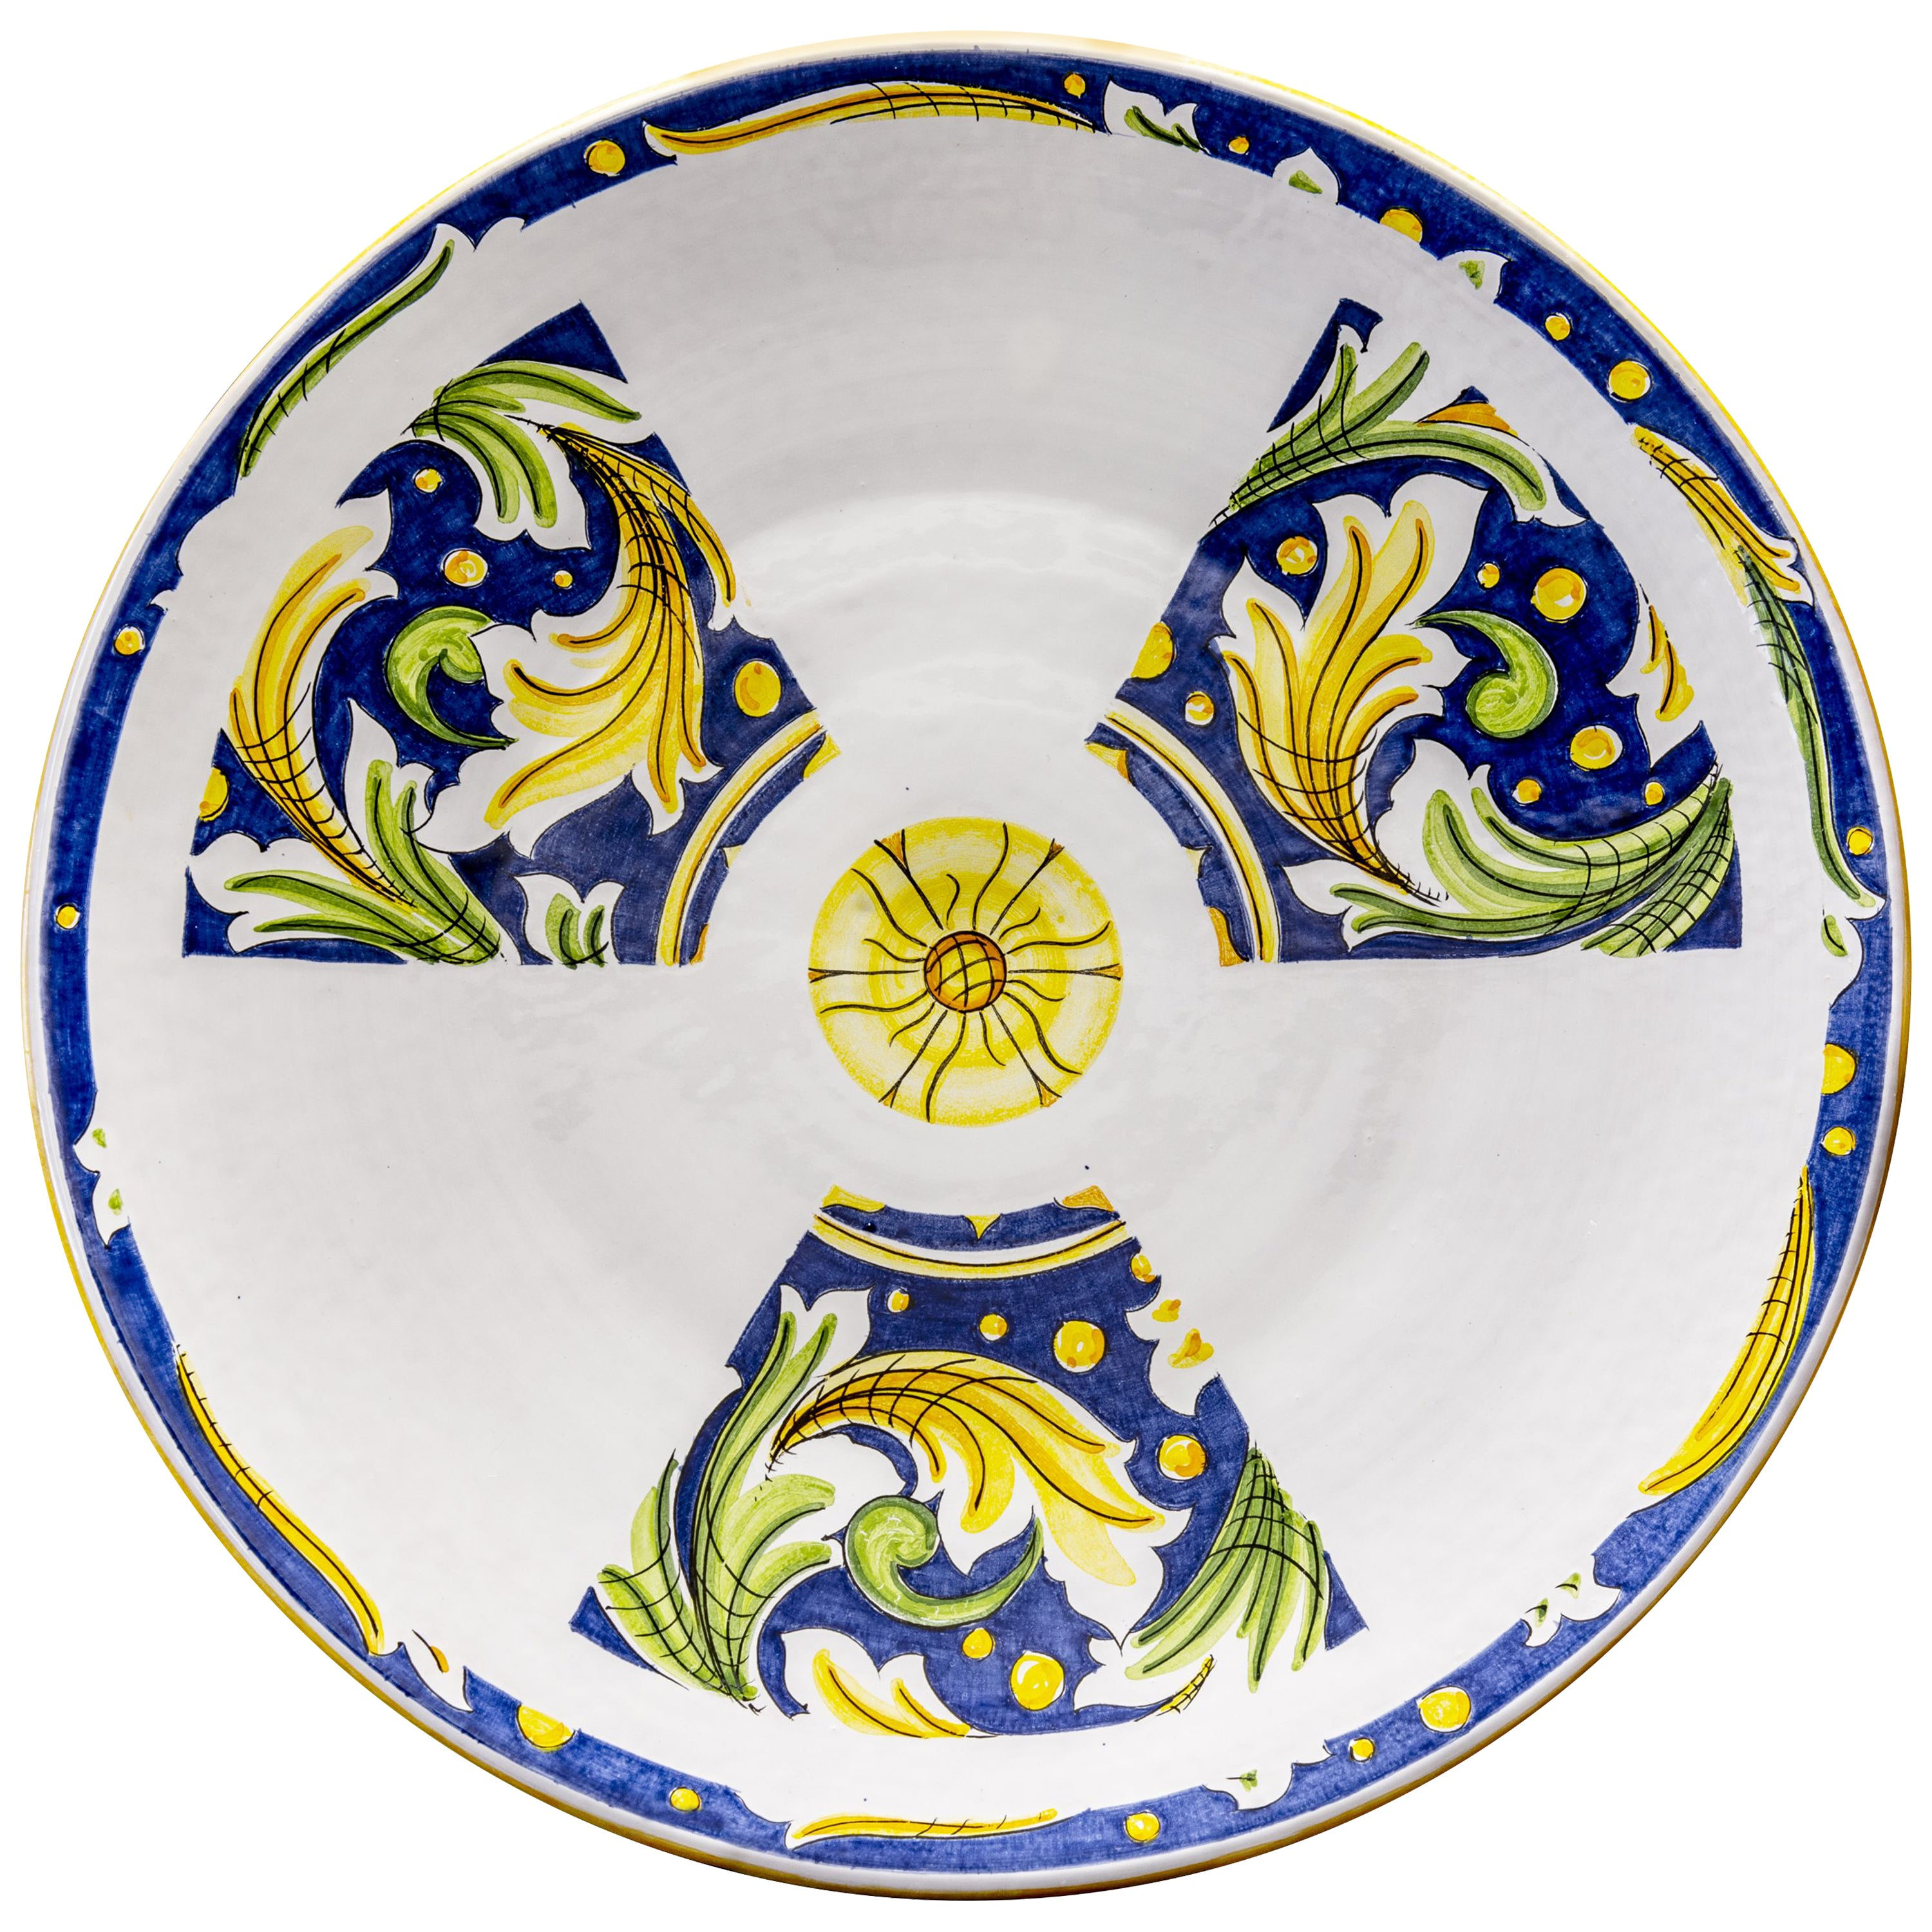 Ceramic Plate Hand Painted Glazed Earthenware Italian Contemporary